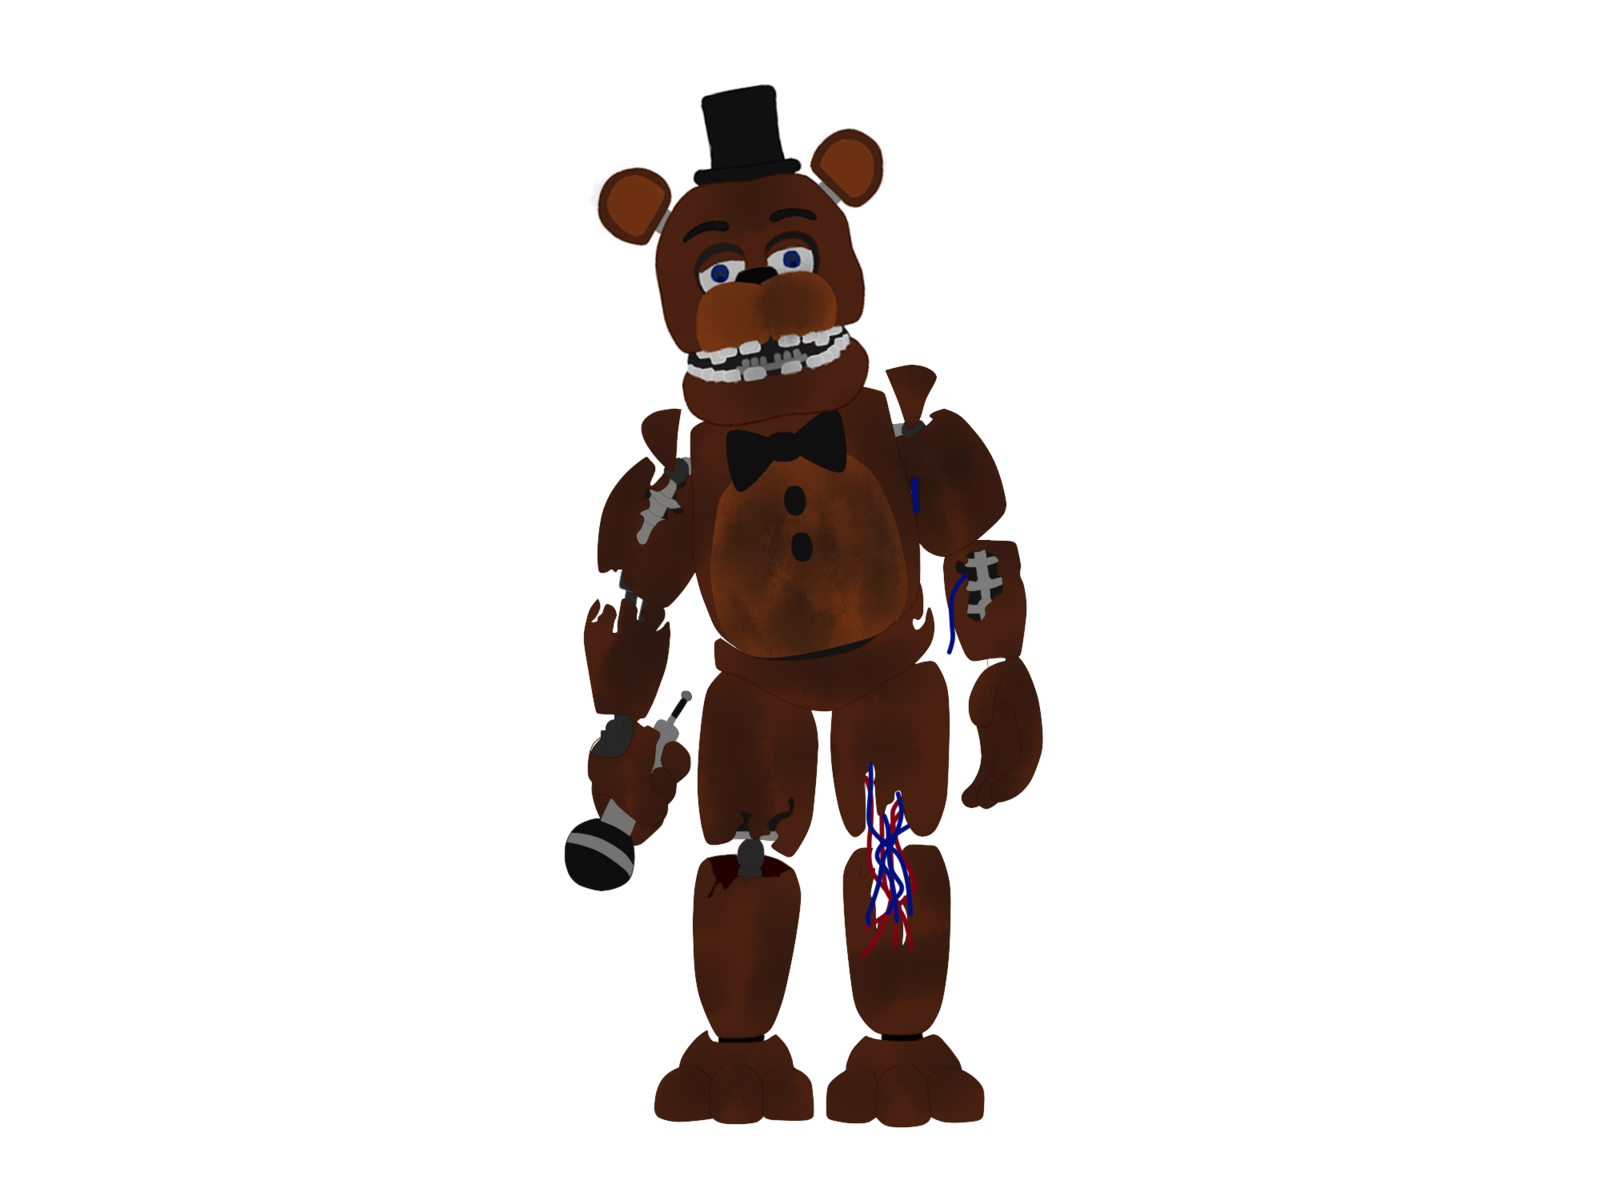 Skin clipart full body. Withered freddy fnaf by